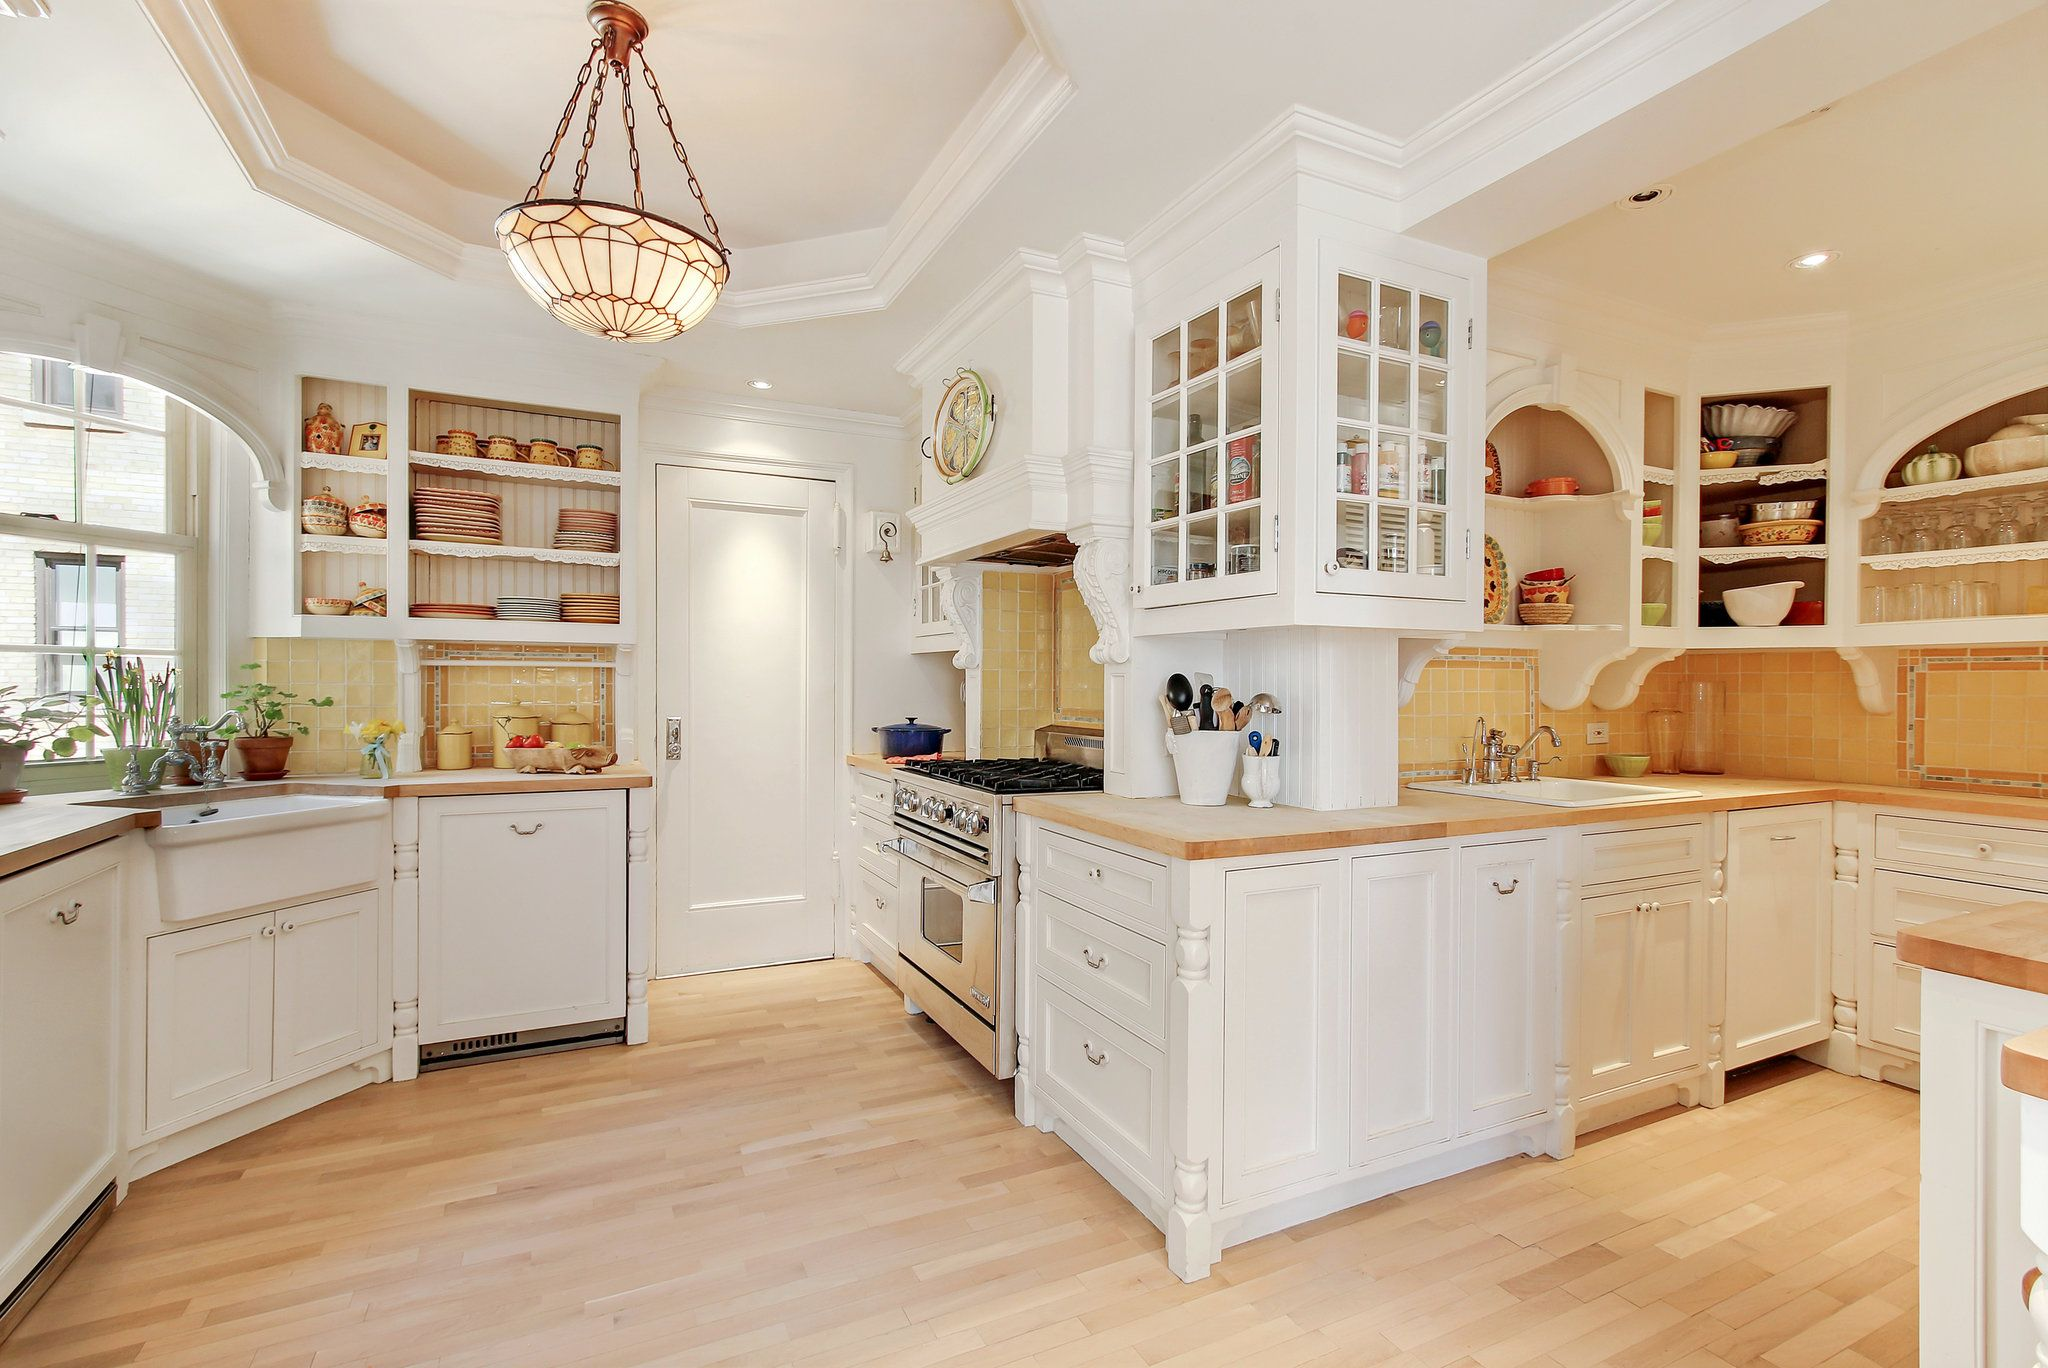 Barbara Corcoran, a reality TV star and real estate consultant, recently sold her home at 1192 Park Avenue.